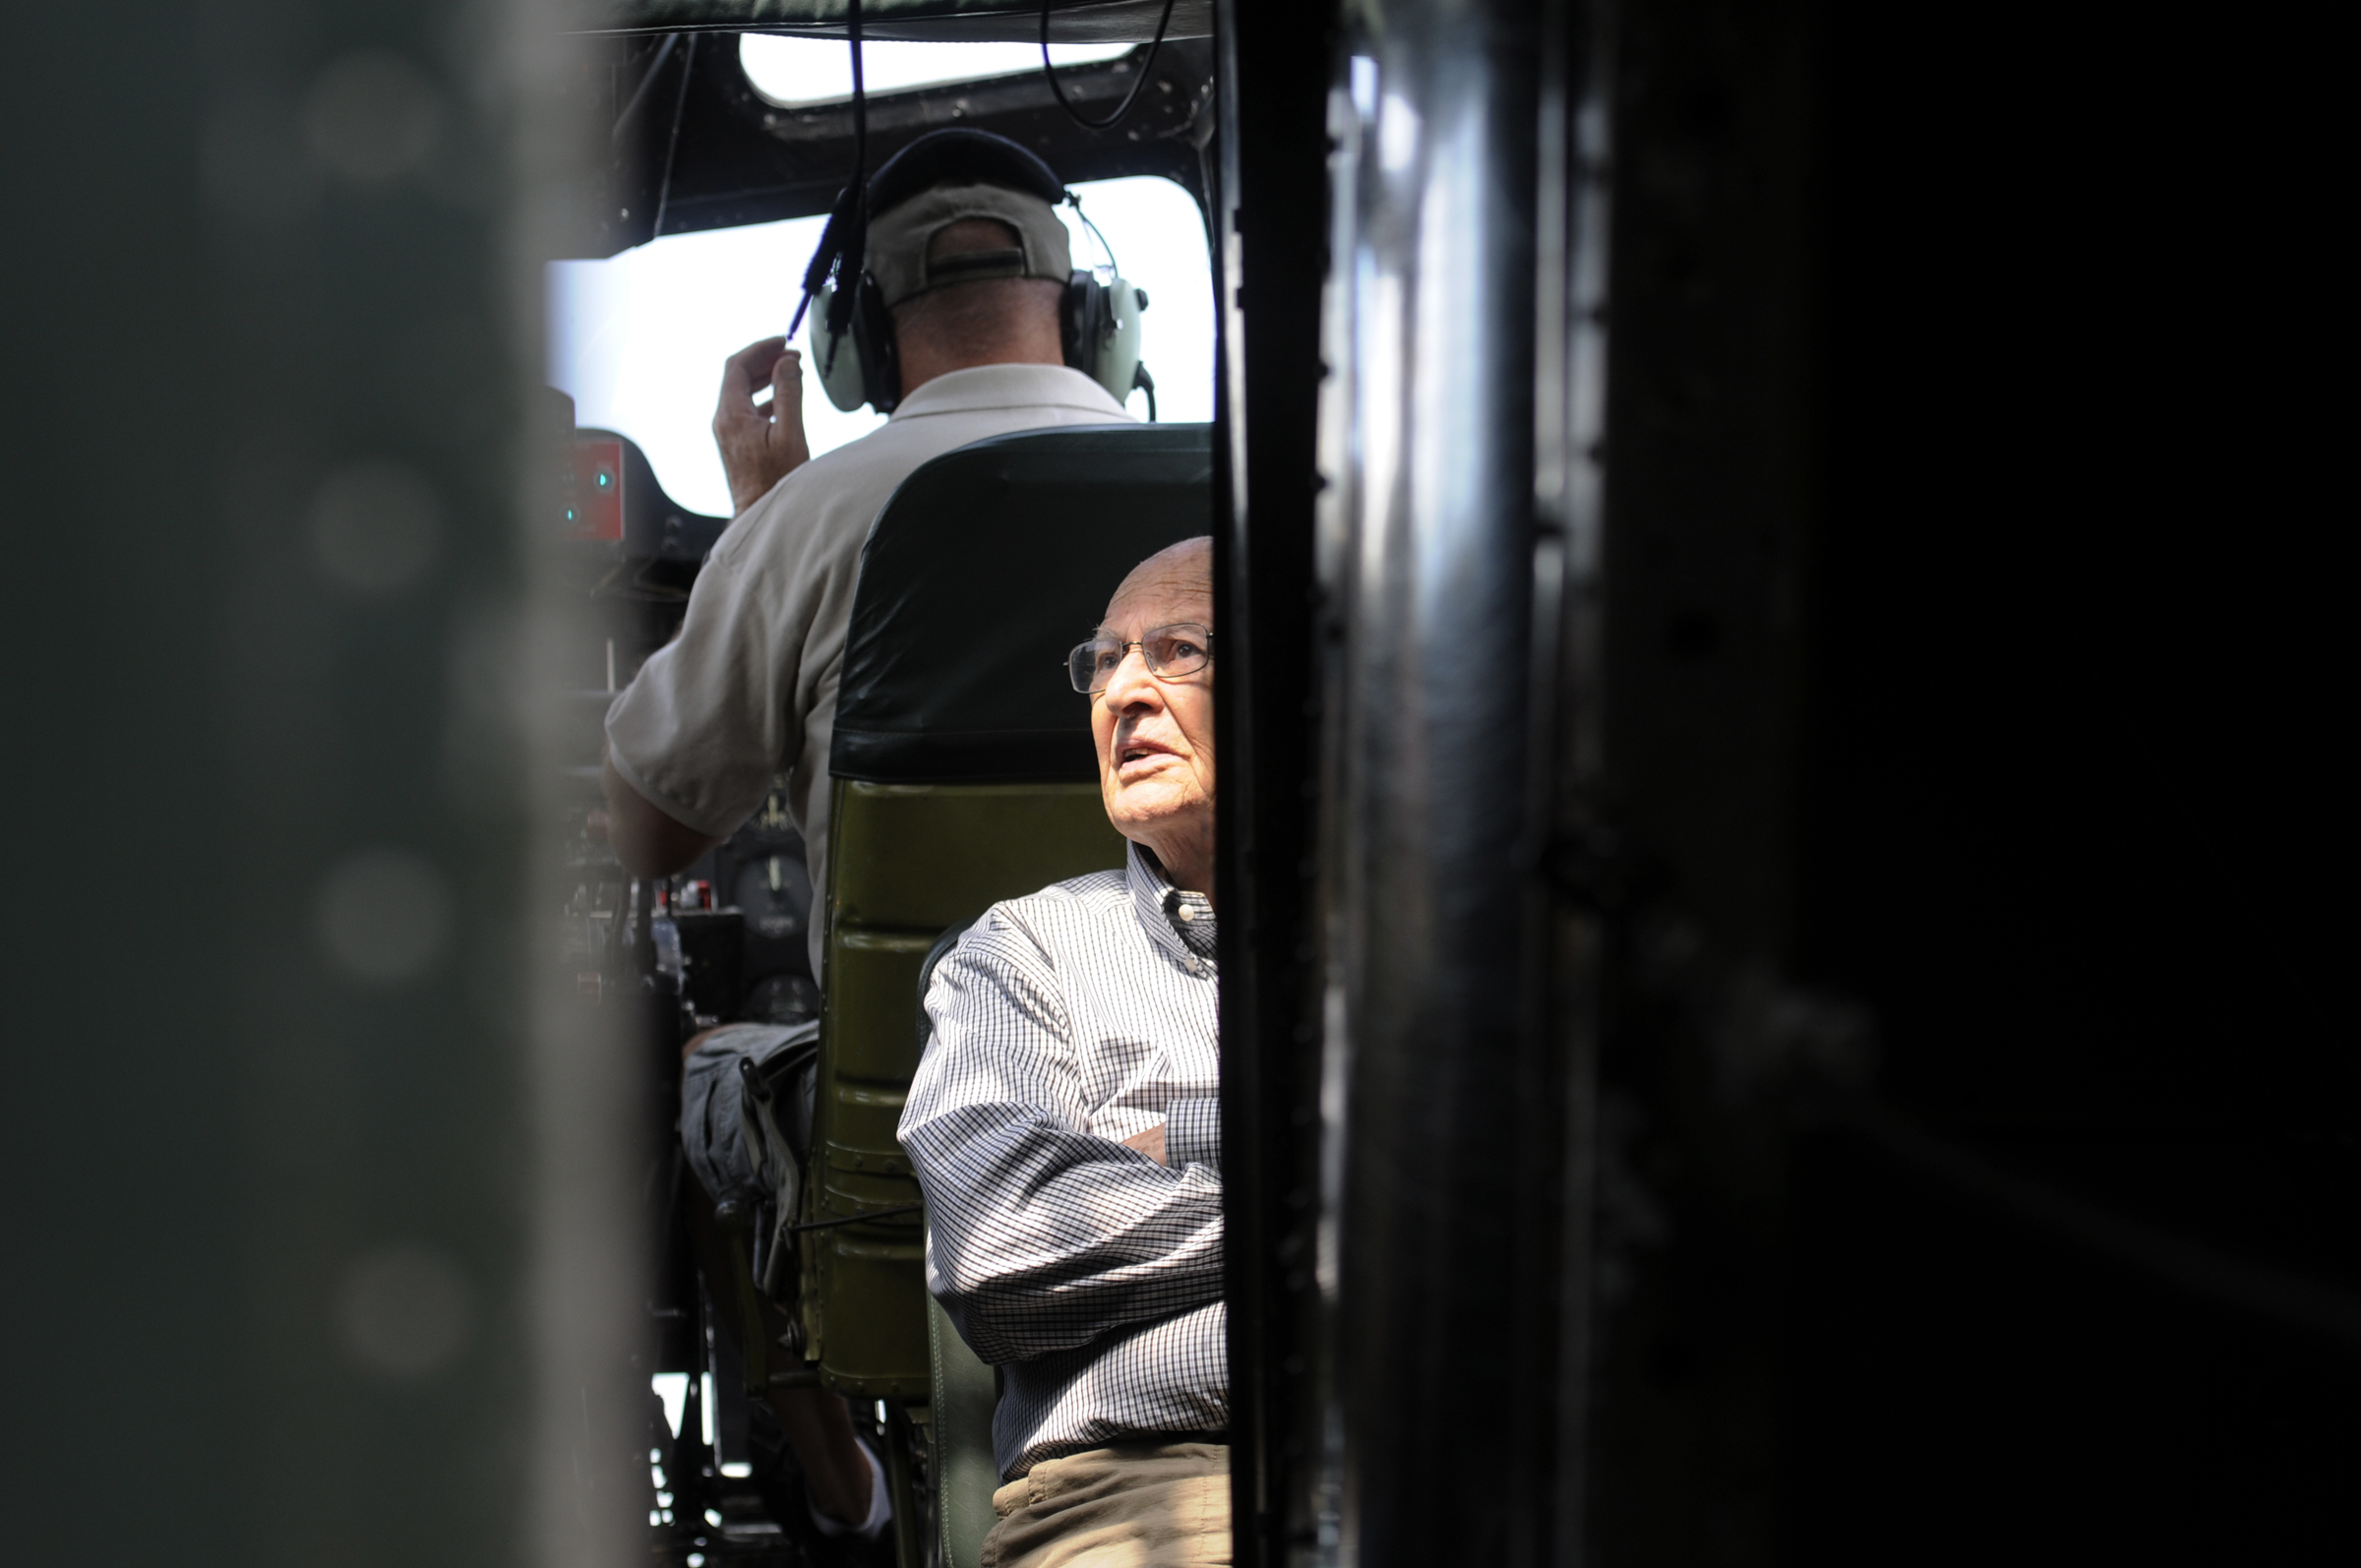 Ken Johnson, 87, a former tail gunner in a B-17 Flying Fortress sits behind the co-pilot during a short flight aboard the Memphis Belle, a copy of a World War II bomber that saw service in Europe. For Johnson, the war ended just after he compteted training. He lives in Newtown.